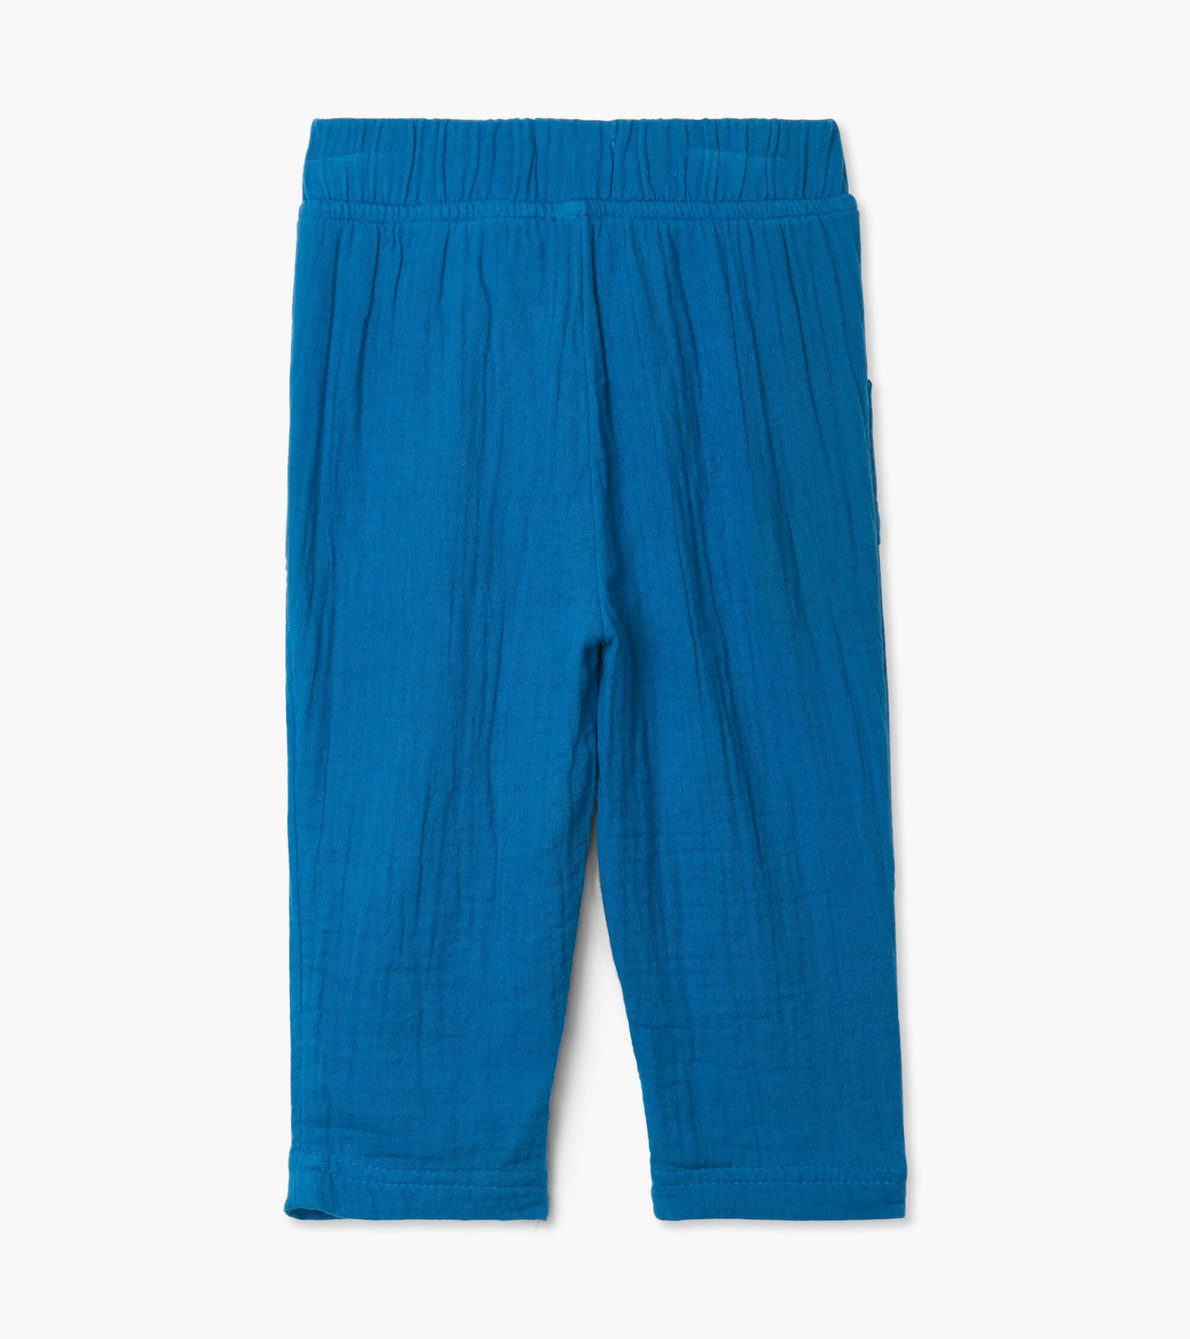 View larger image of Blue Baby Pants